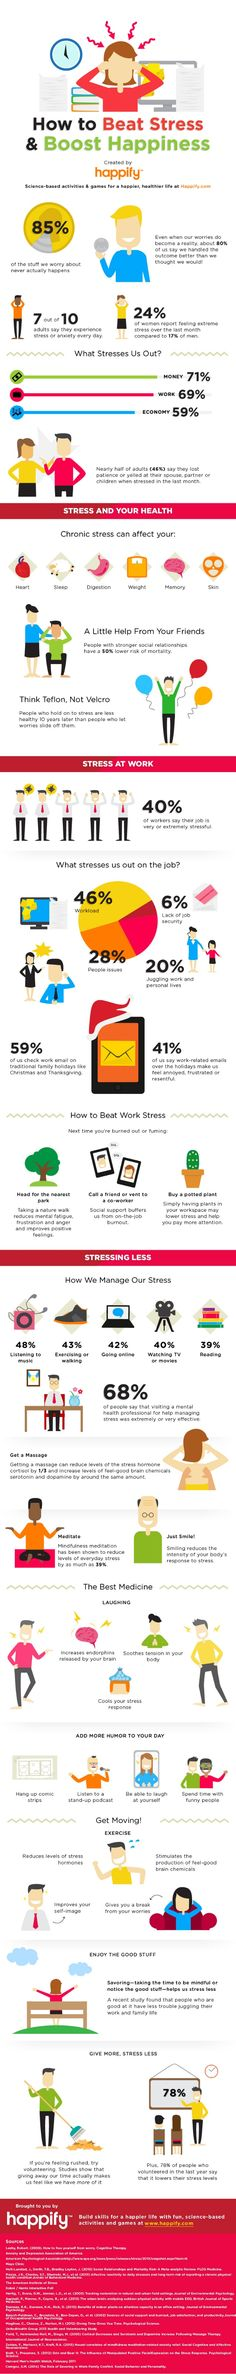 Beat Stress, Boost Happiness http://www.avidcareerist.com/2014/06/03/how-to-beat-stress-be-happier-right-now-infographic/